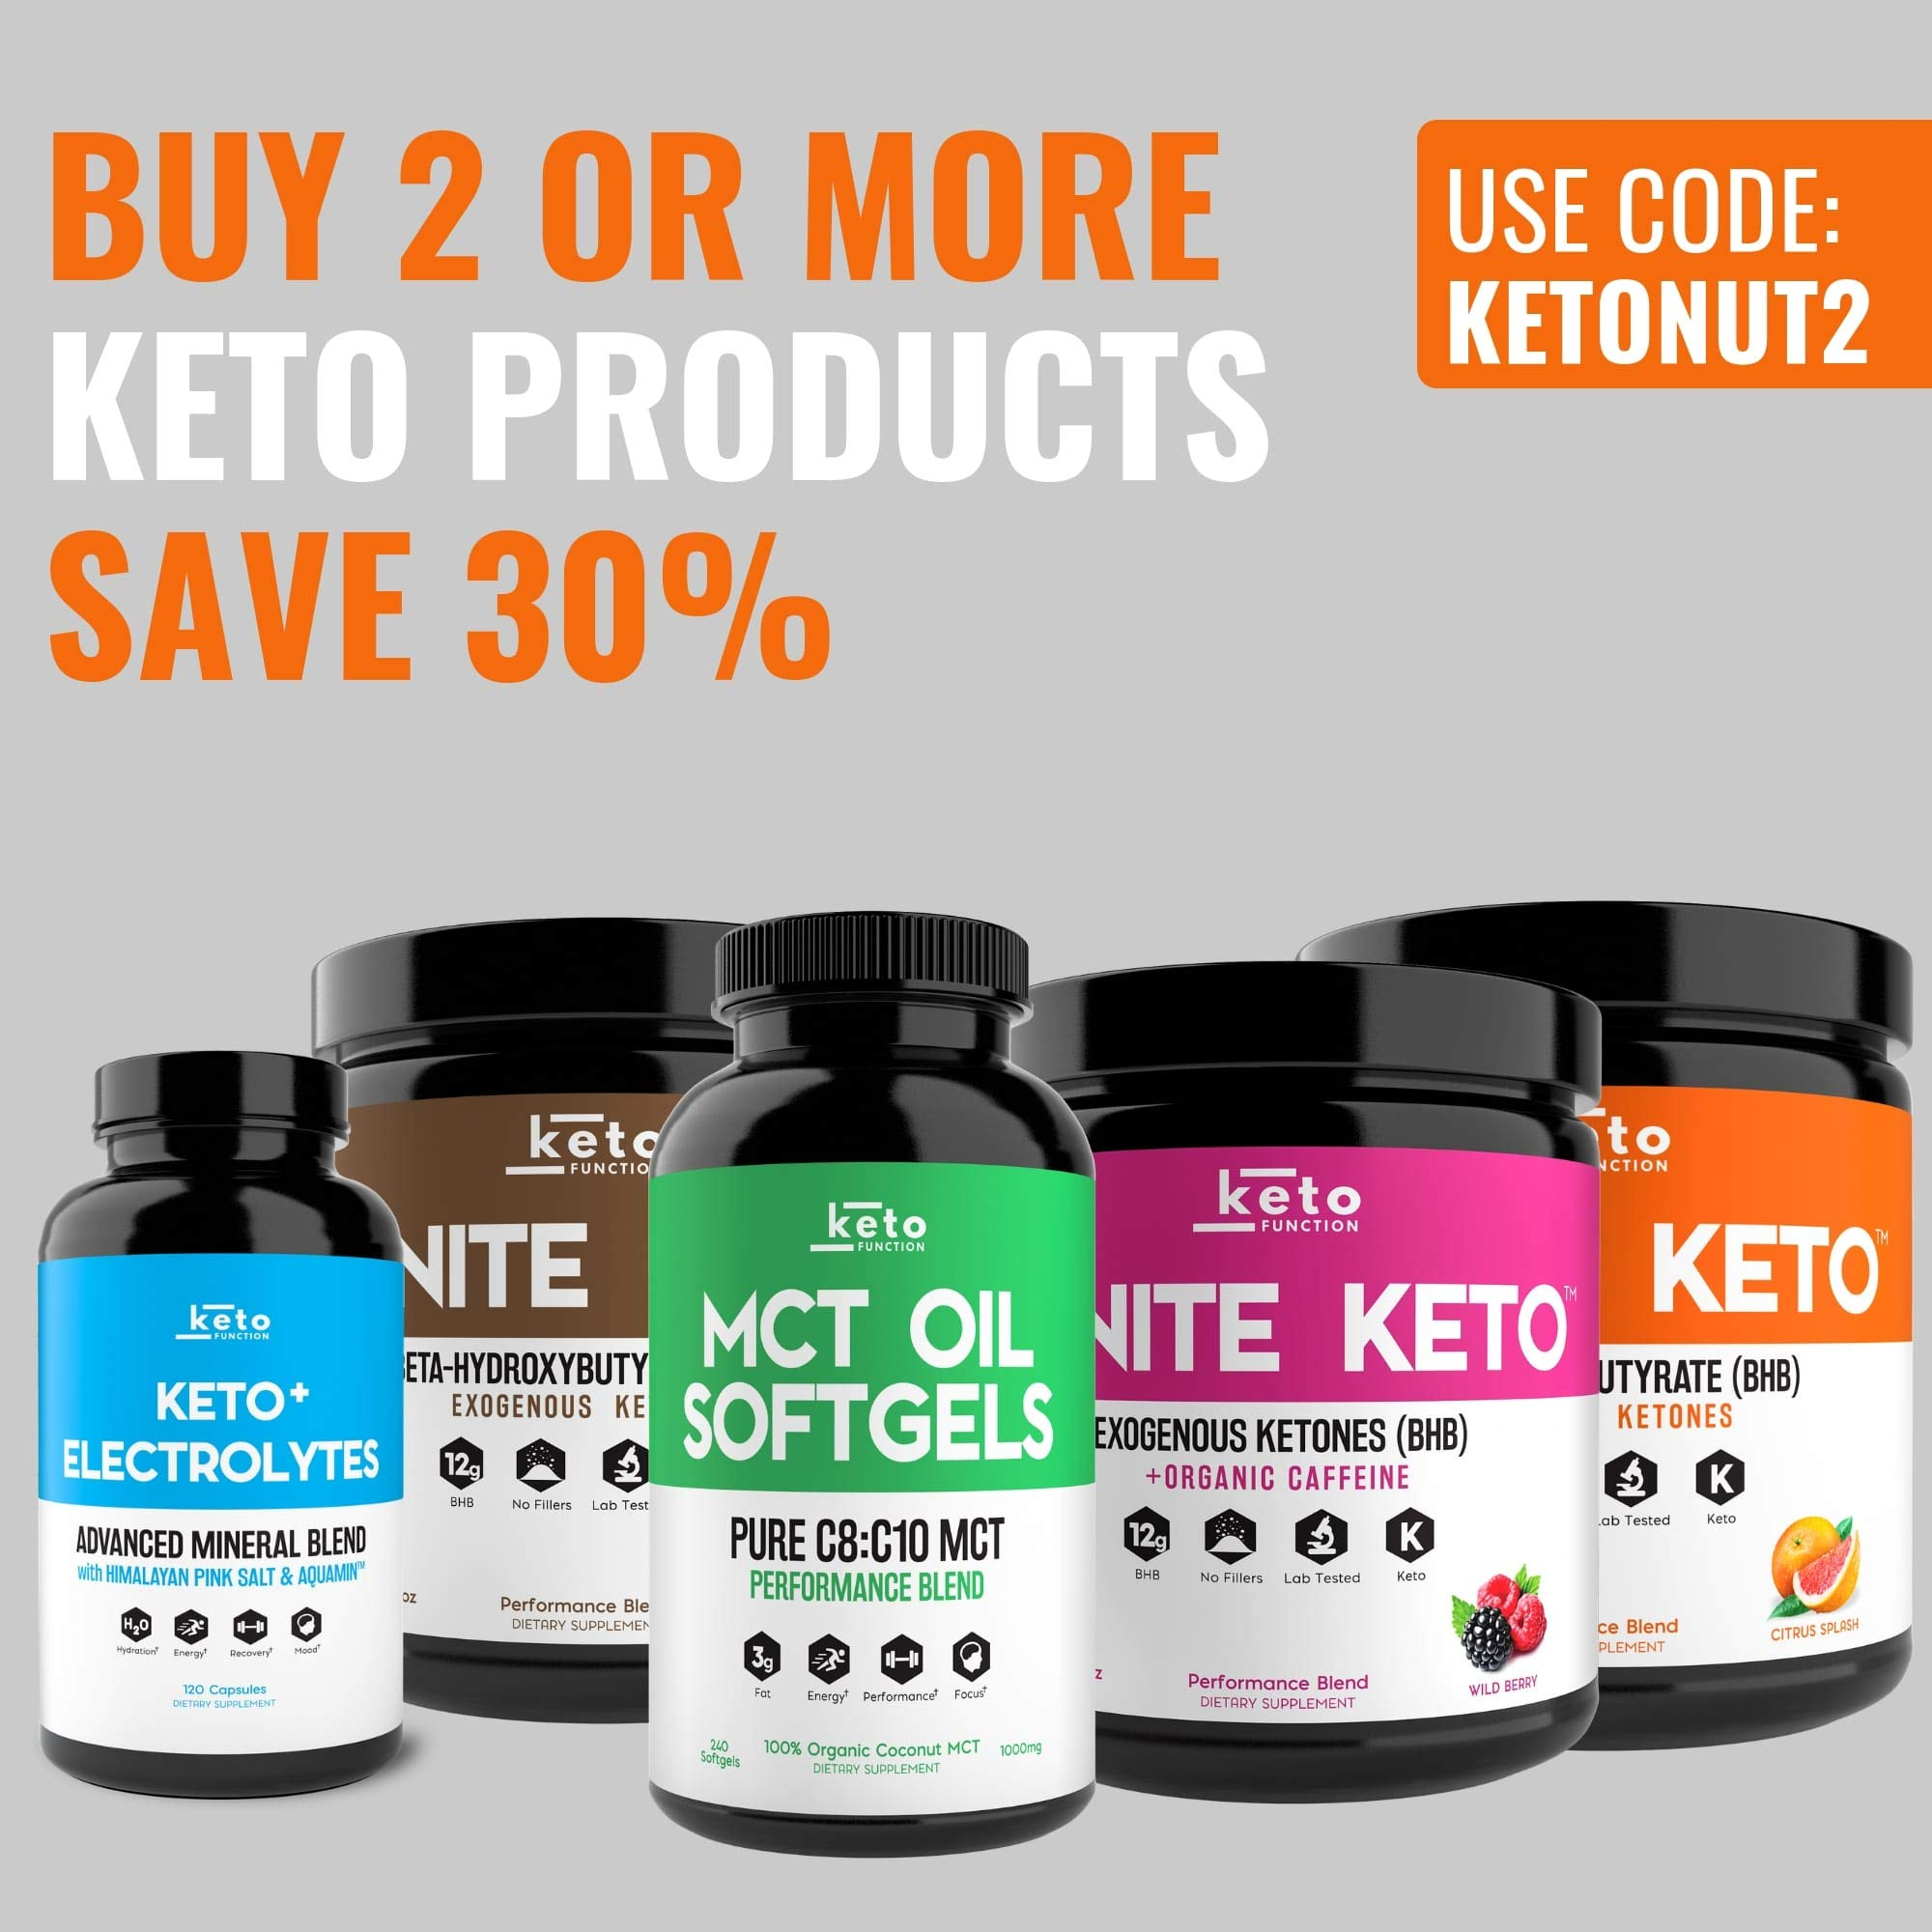 IGNITE KETO Drink - Instant Exogenous Ketones Supplement - 12g Pure BHB Salts - Fuel Ketosis, Energy, and Focus - Best goBHB Ketone Drink Powder Mix - Perfect for Low Carb Keto Diet by Keto Function (Image #7)